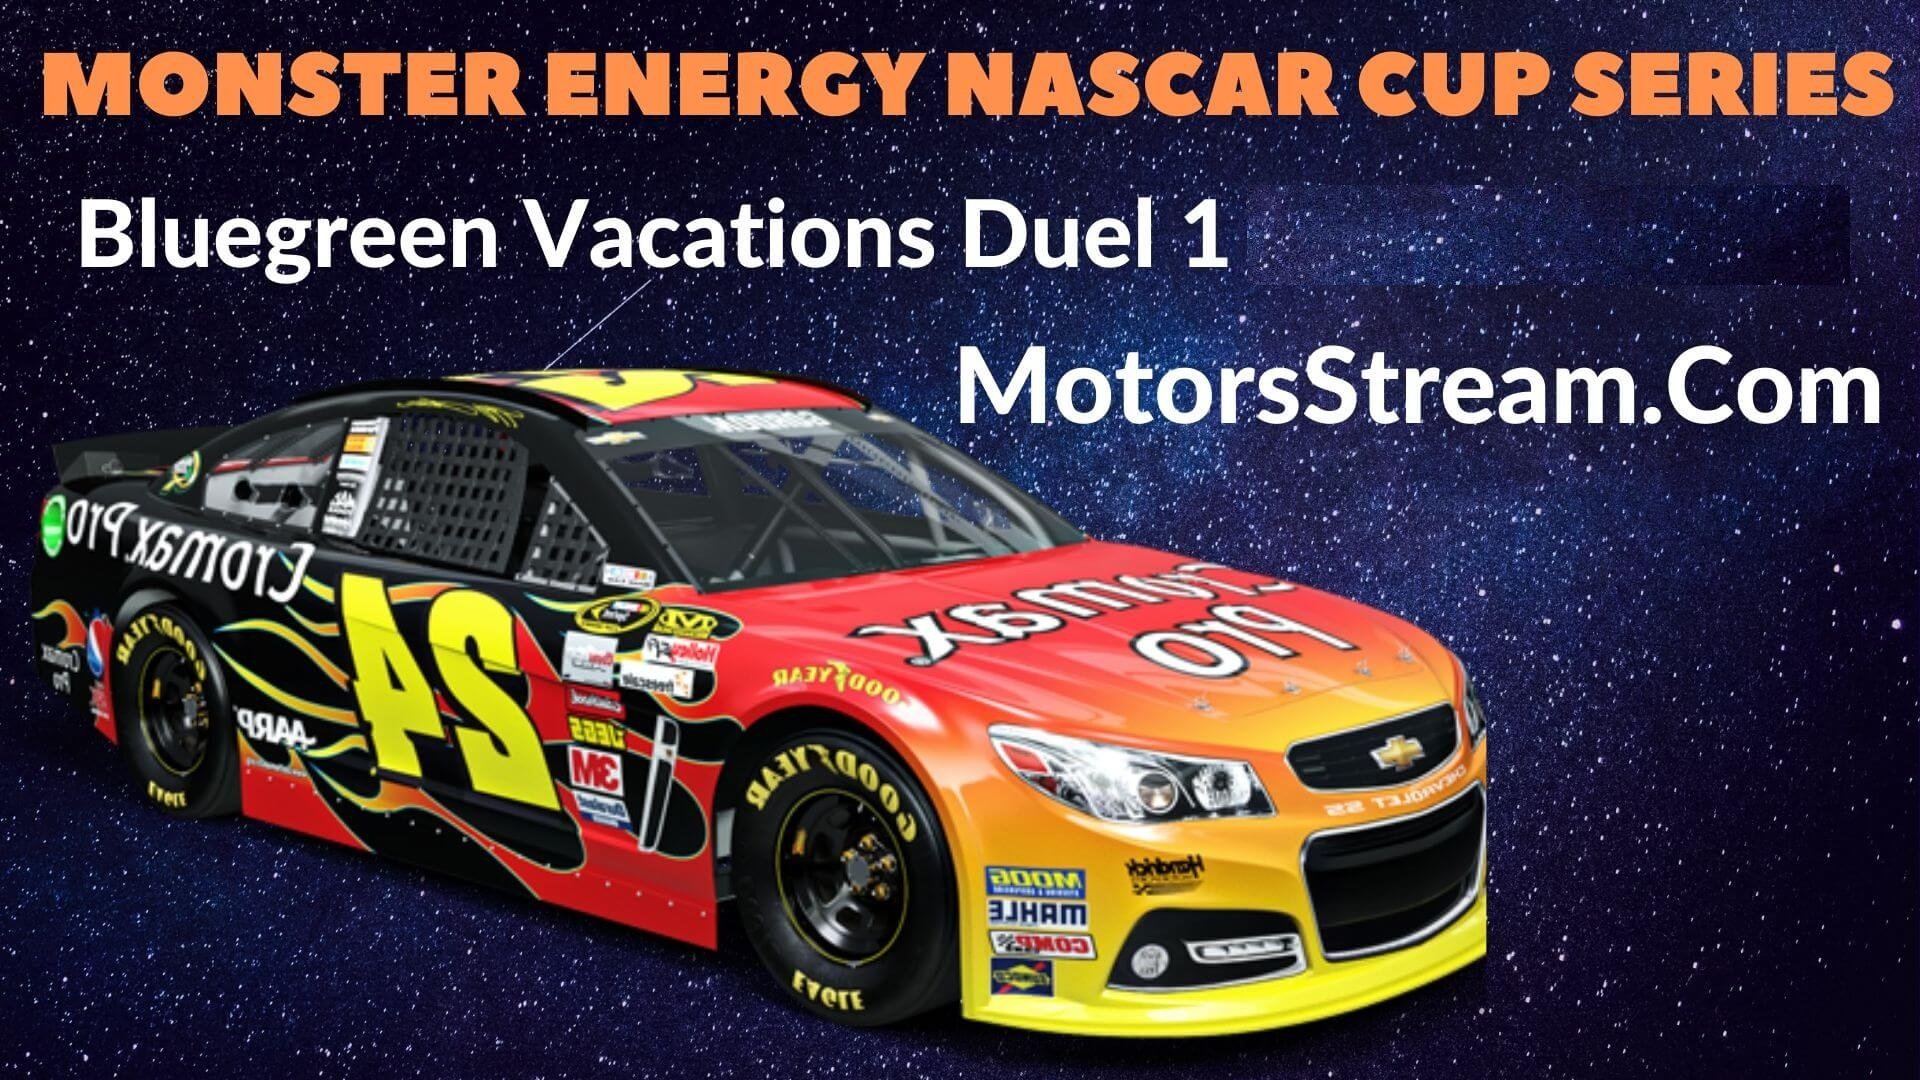 Bluegreen Vacations Duel 1 Live Stream   NASCAR CUP 2020